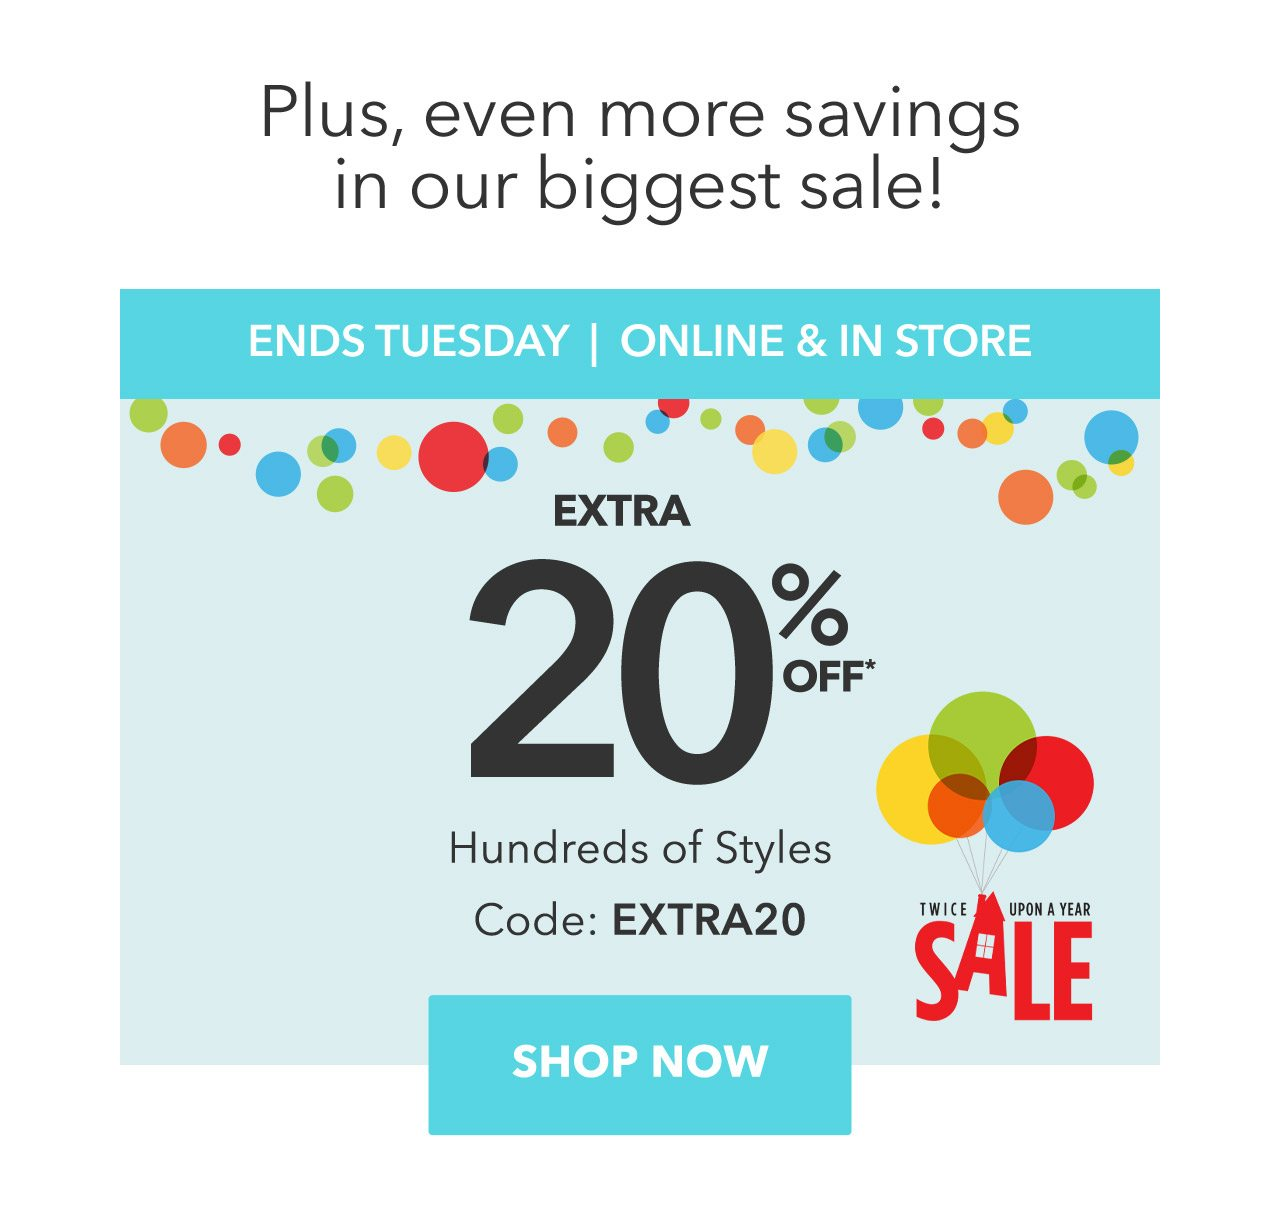 Plus, even more savings in our biggest sale! ENDS TUESDAY | ONLINE & IN STORE, Twice Upon a Year Sale, Extra 20% Off Hundreds of Styles, Code: EXTRA20 | Shop Now